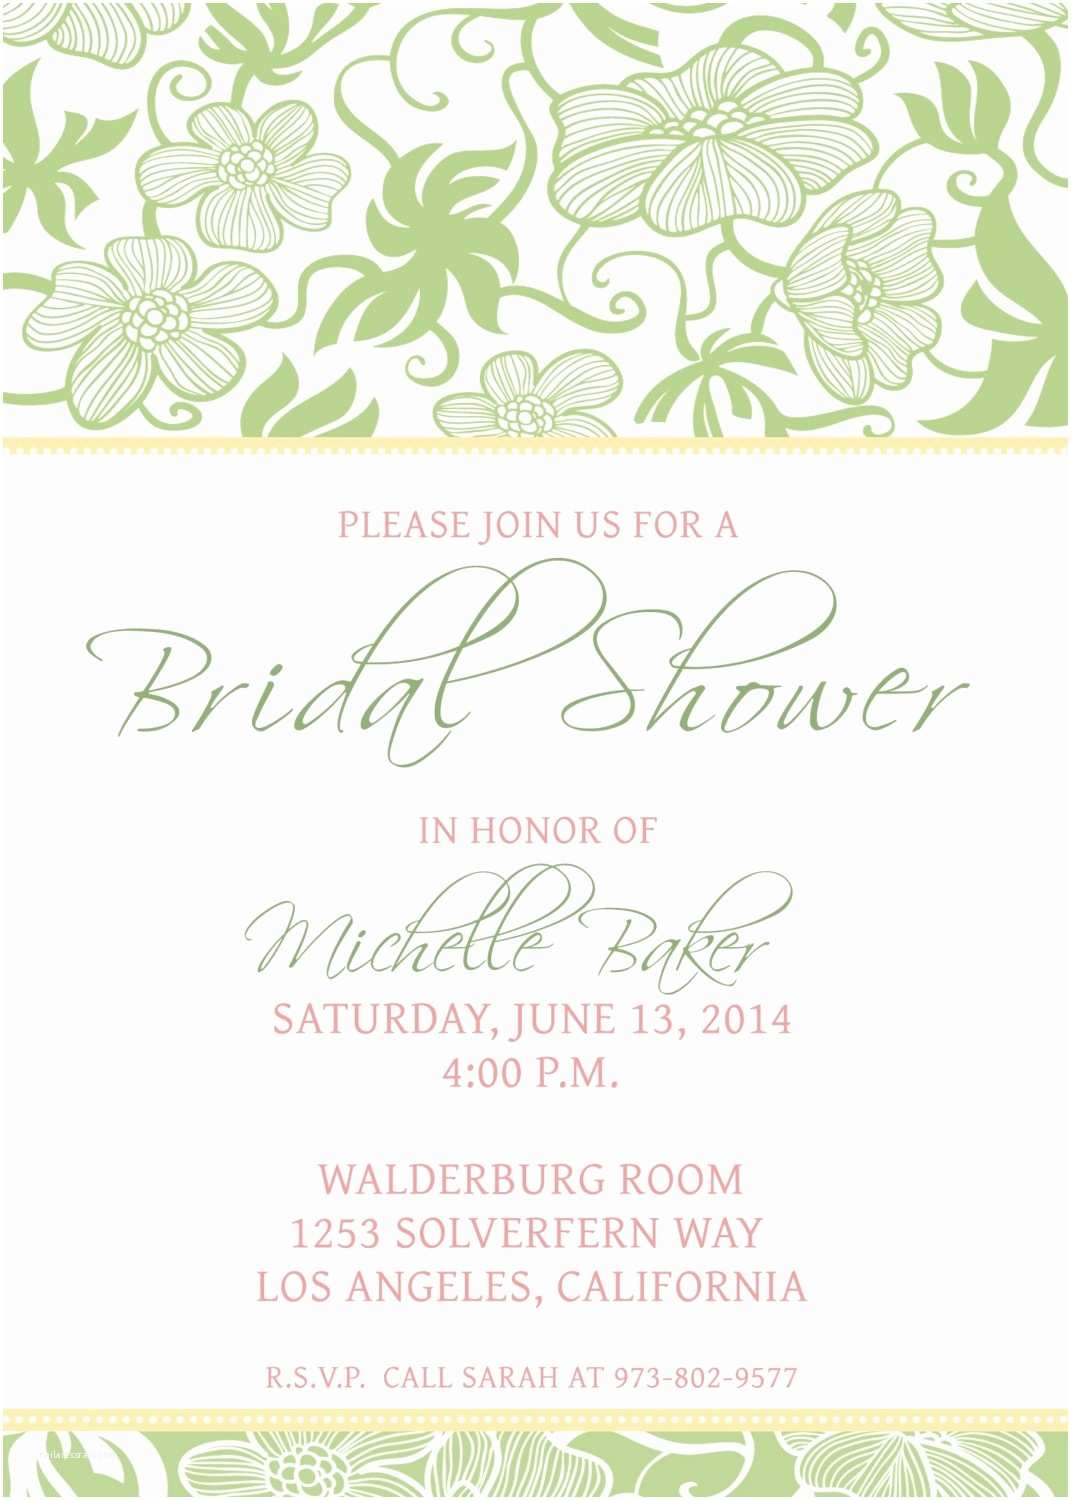 How to Design Your Own Wedding Invitations How to Make Your Own Wedding Invitations Template